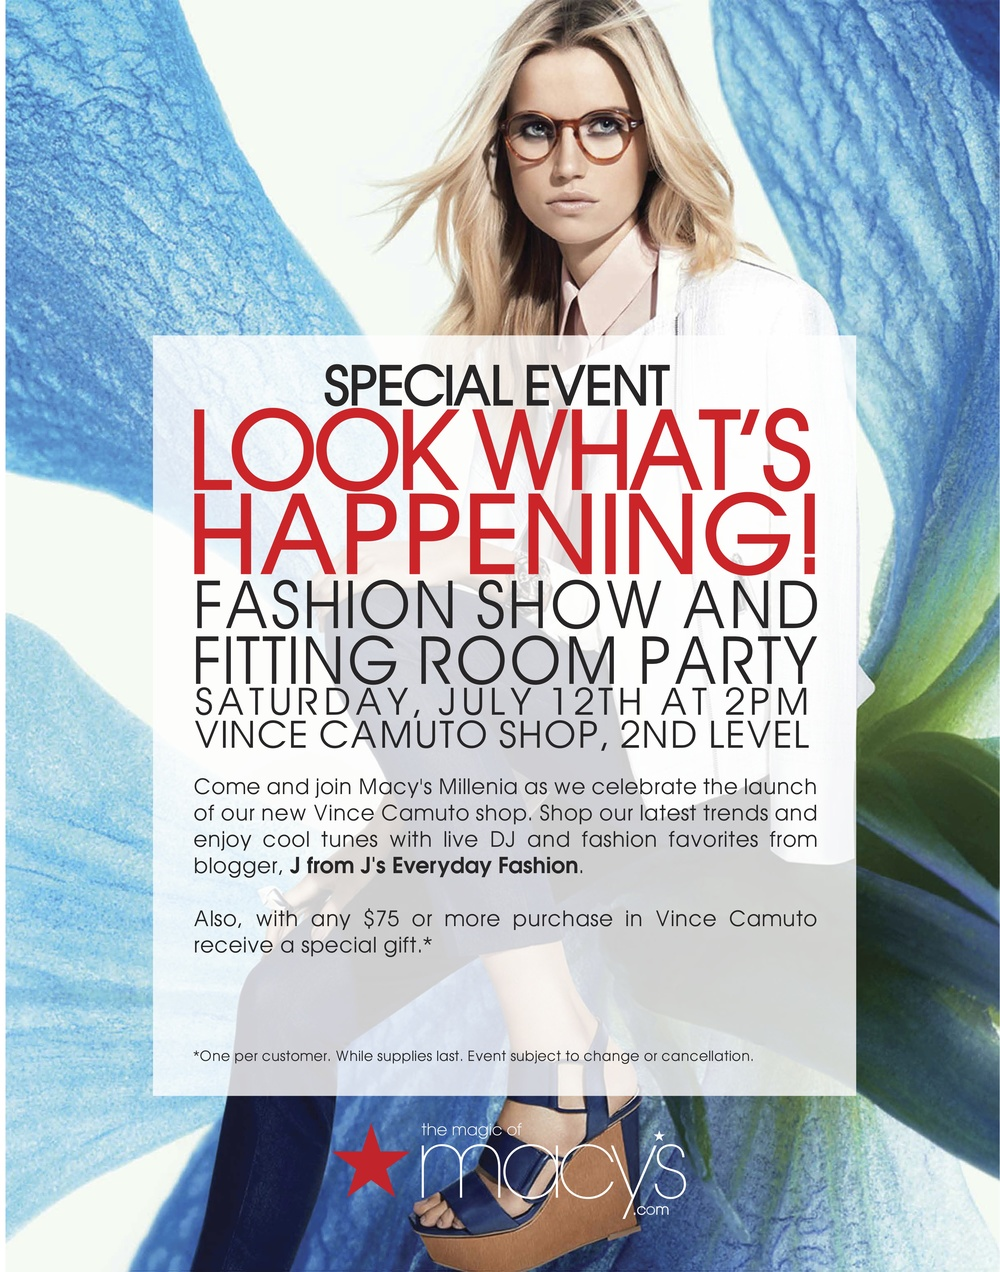 jseverydayfashion Macy's and Vince Camuto event